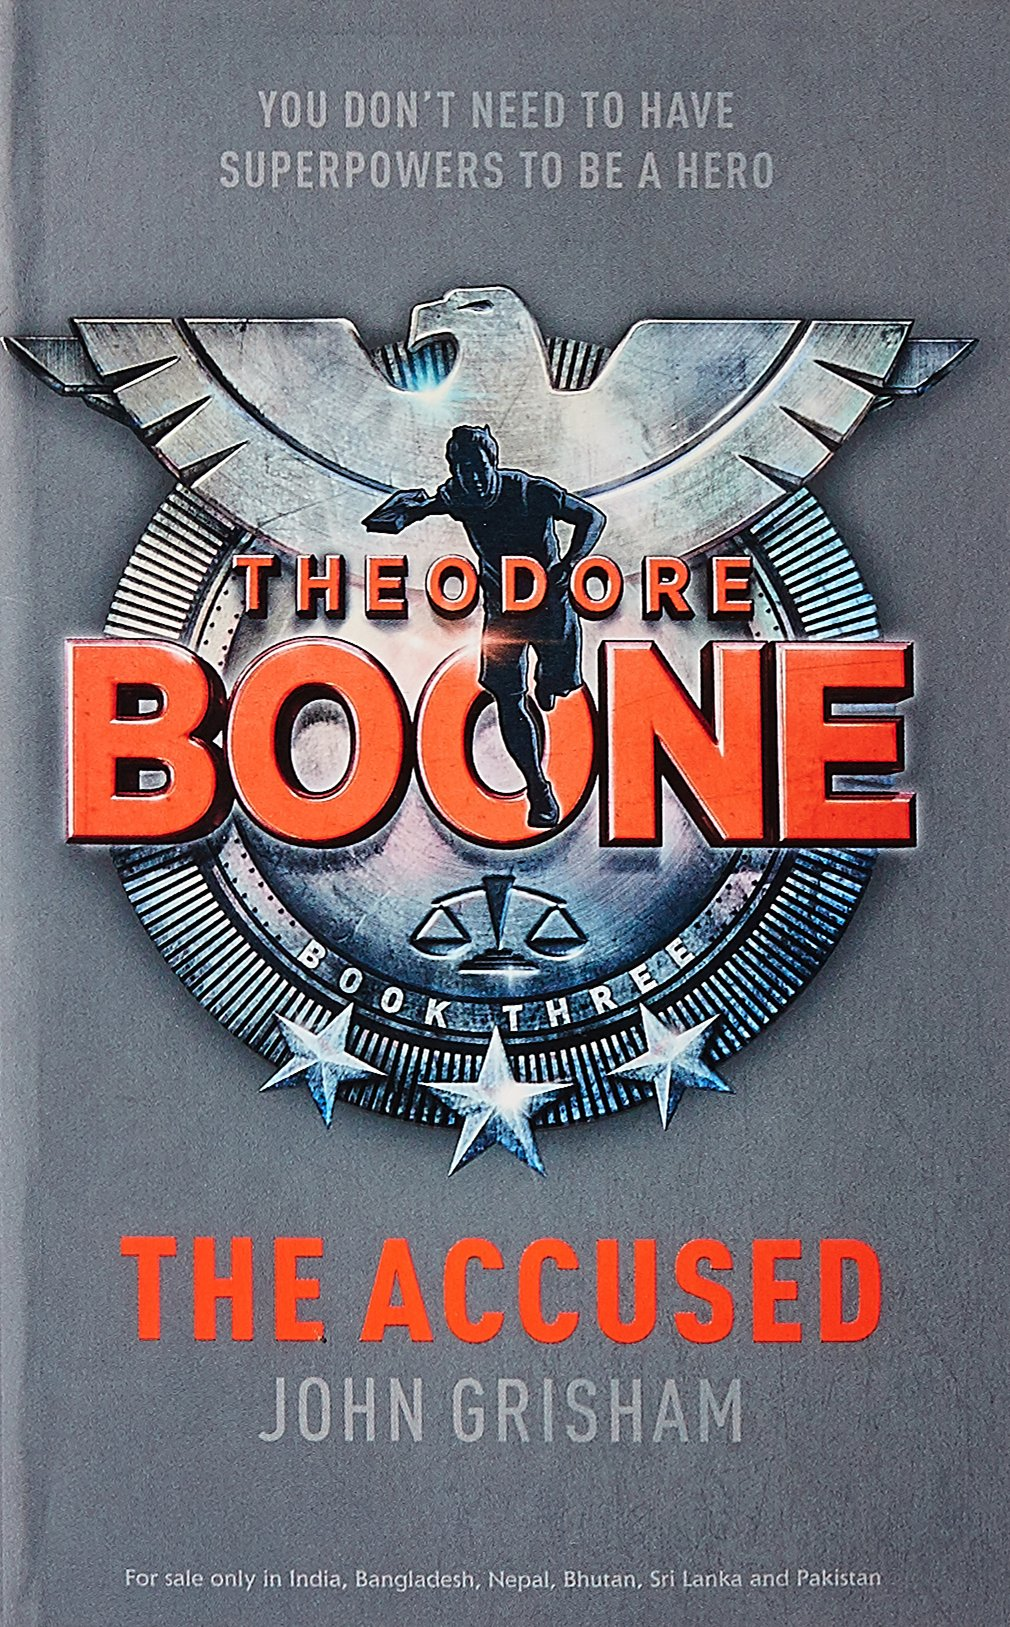 THEODORE BOONE : THE ACCUSED - Half the Man, Twice the Lawyer